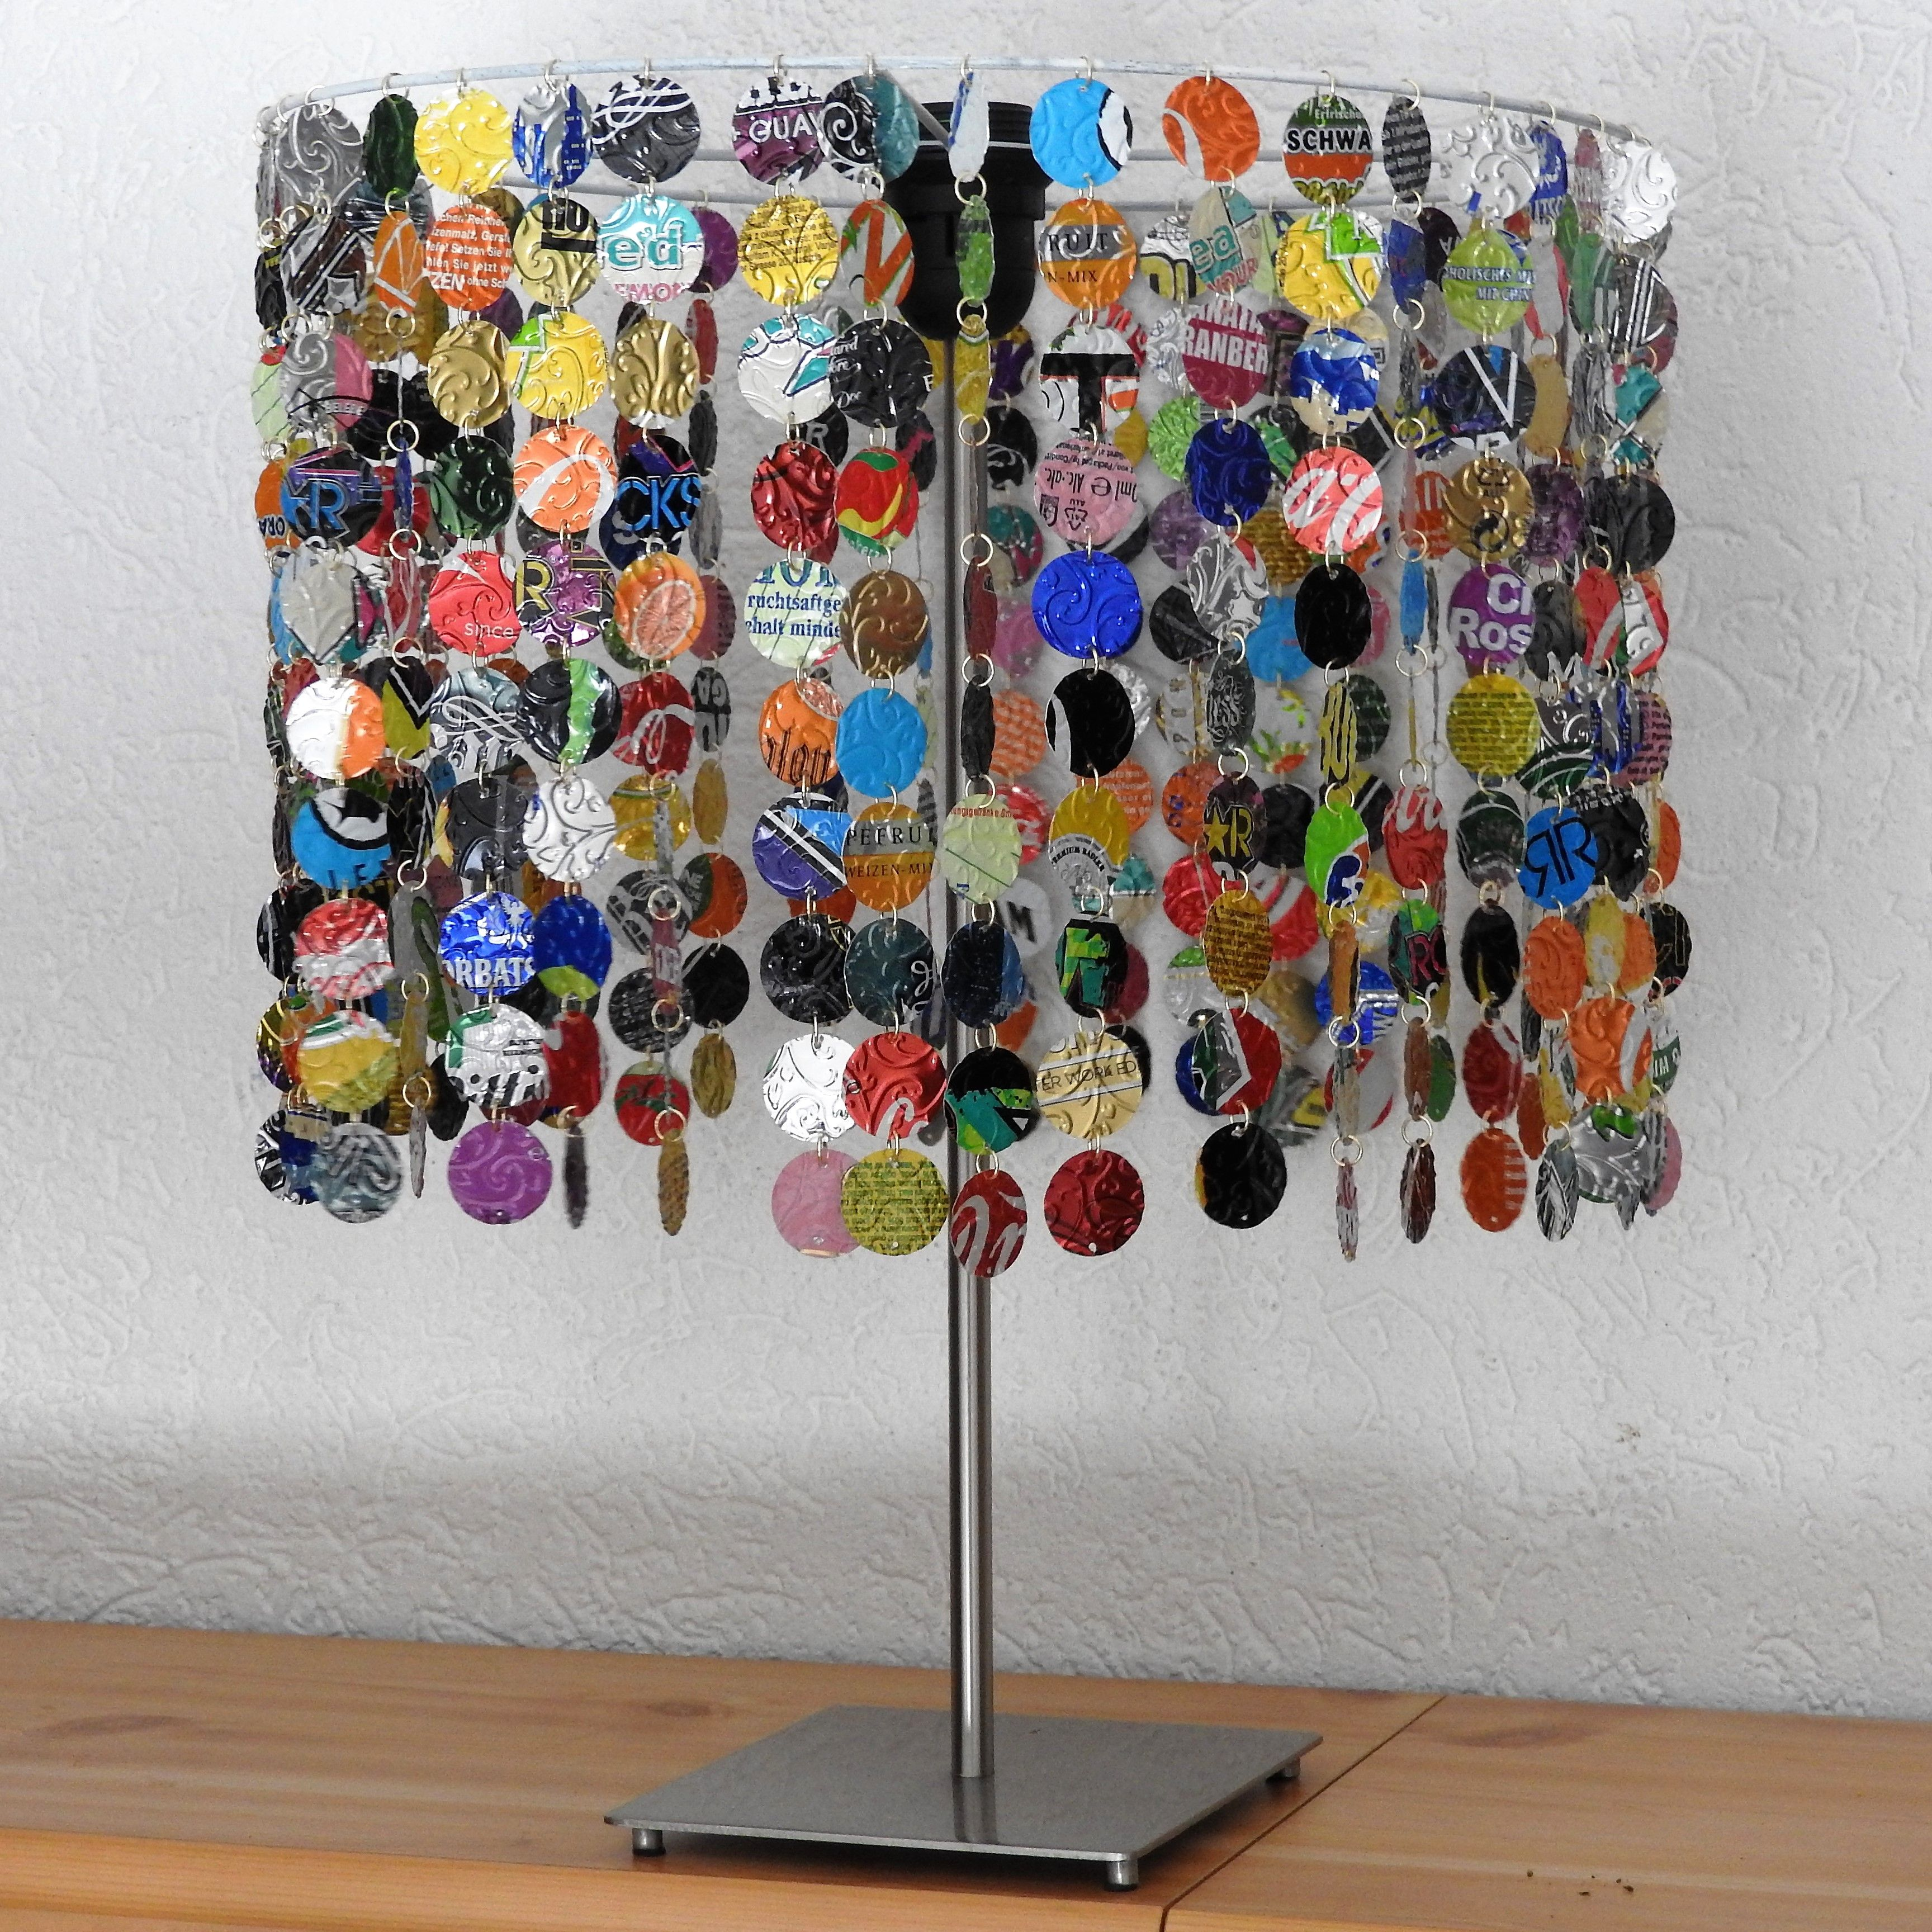 Lampenschirm Aus Getrankedosen Lampshade From Soda Cans By